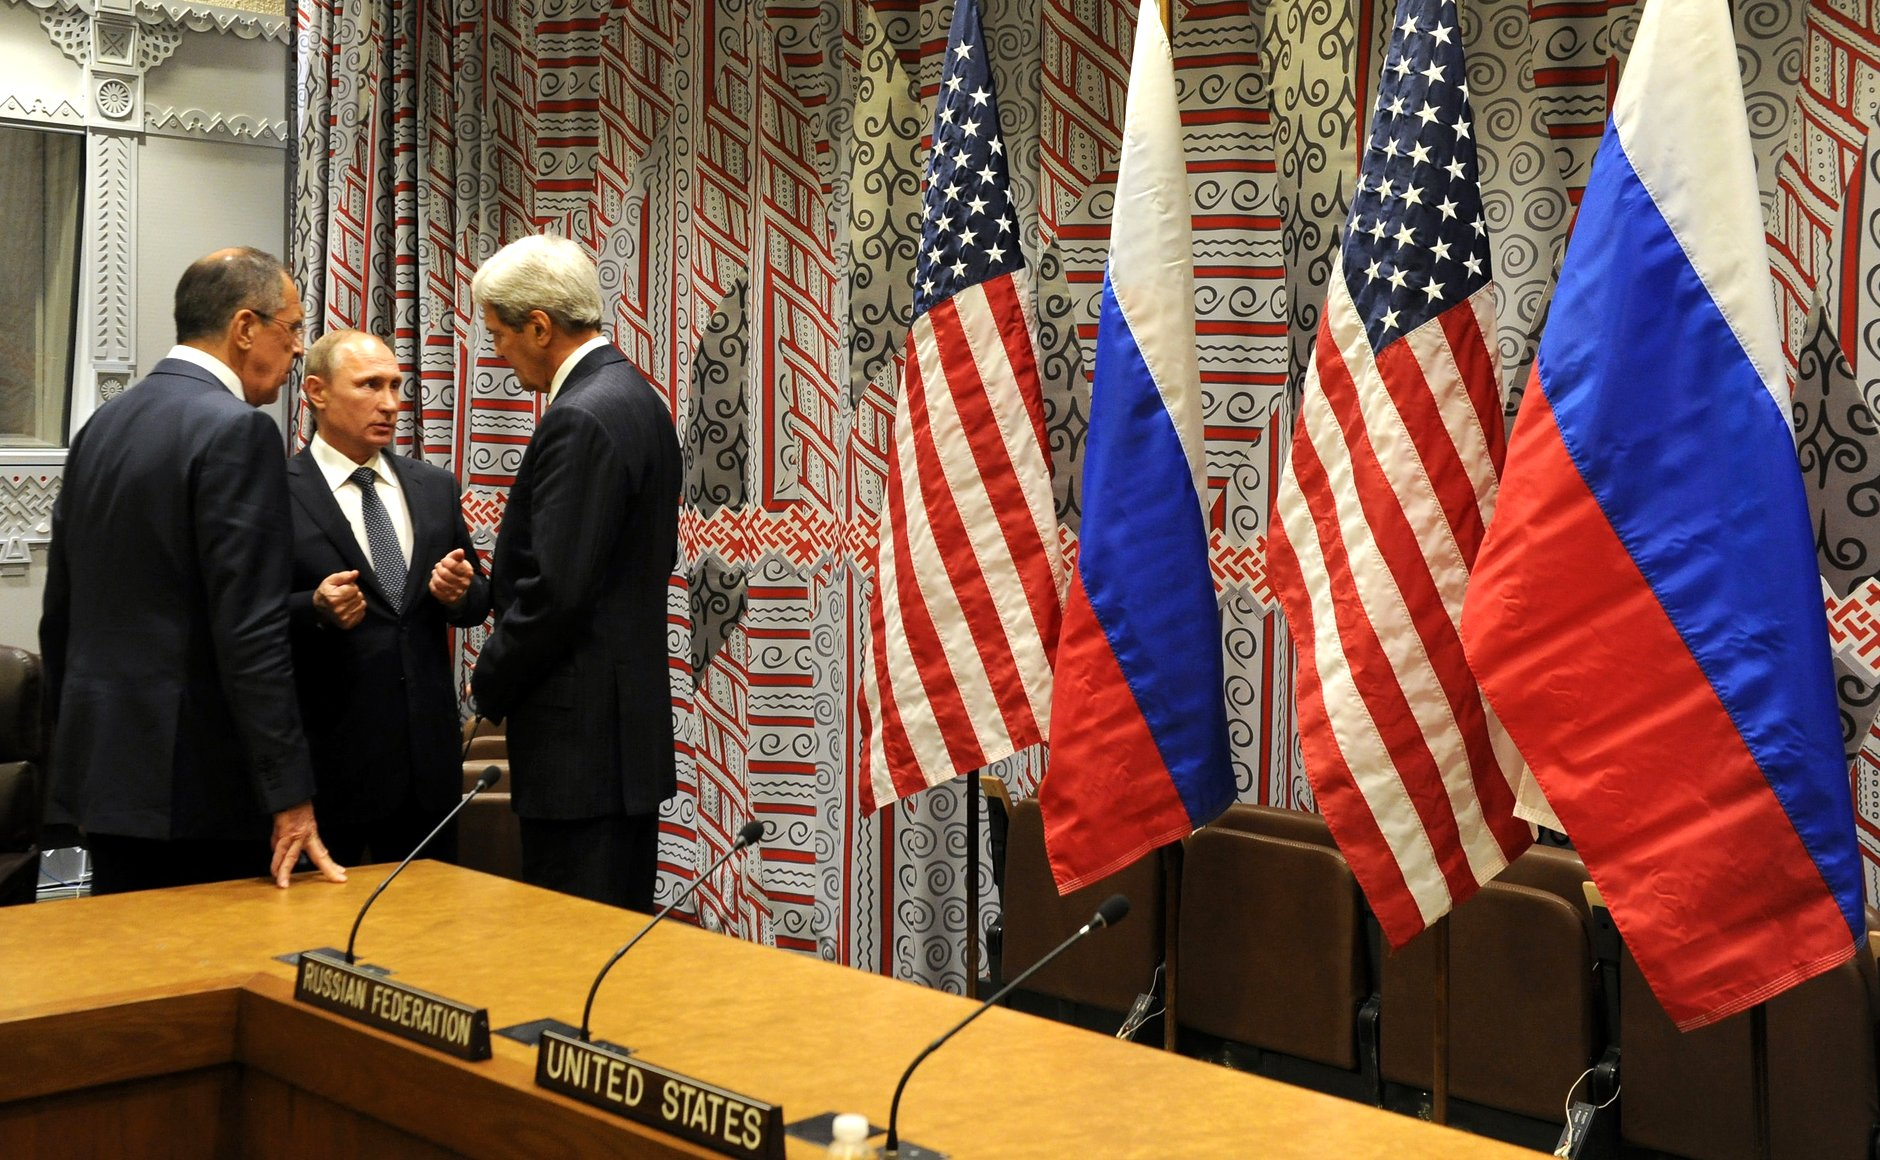 Sergey_Lavrov,_Vladimir_Putin_and_John_Kerry